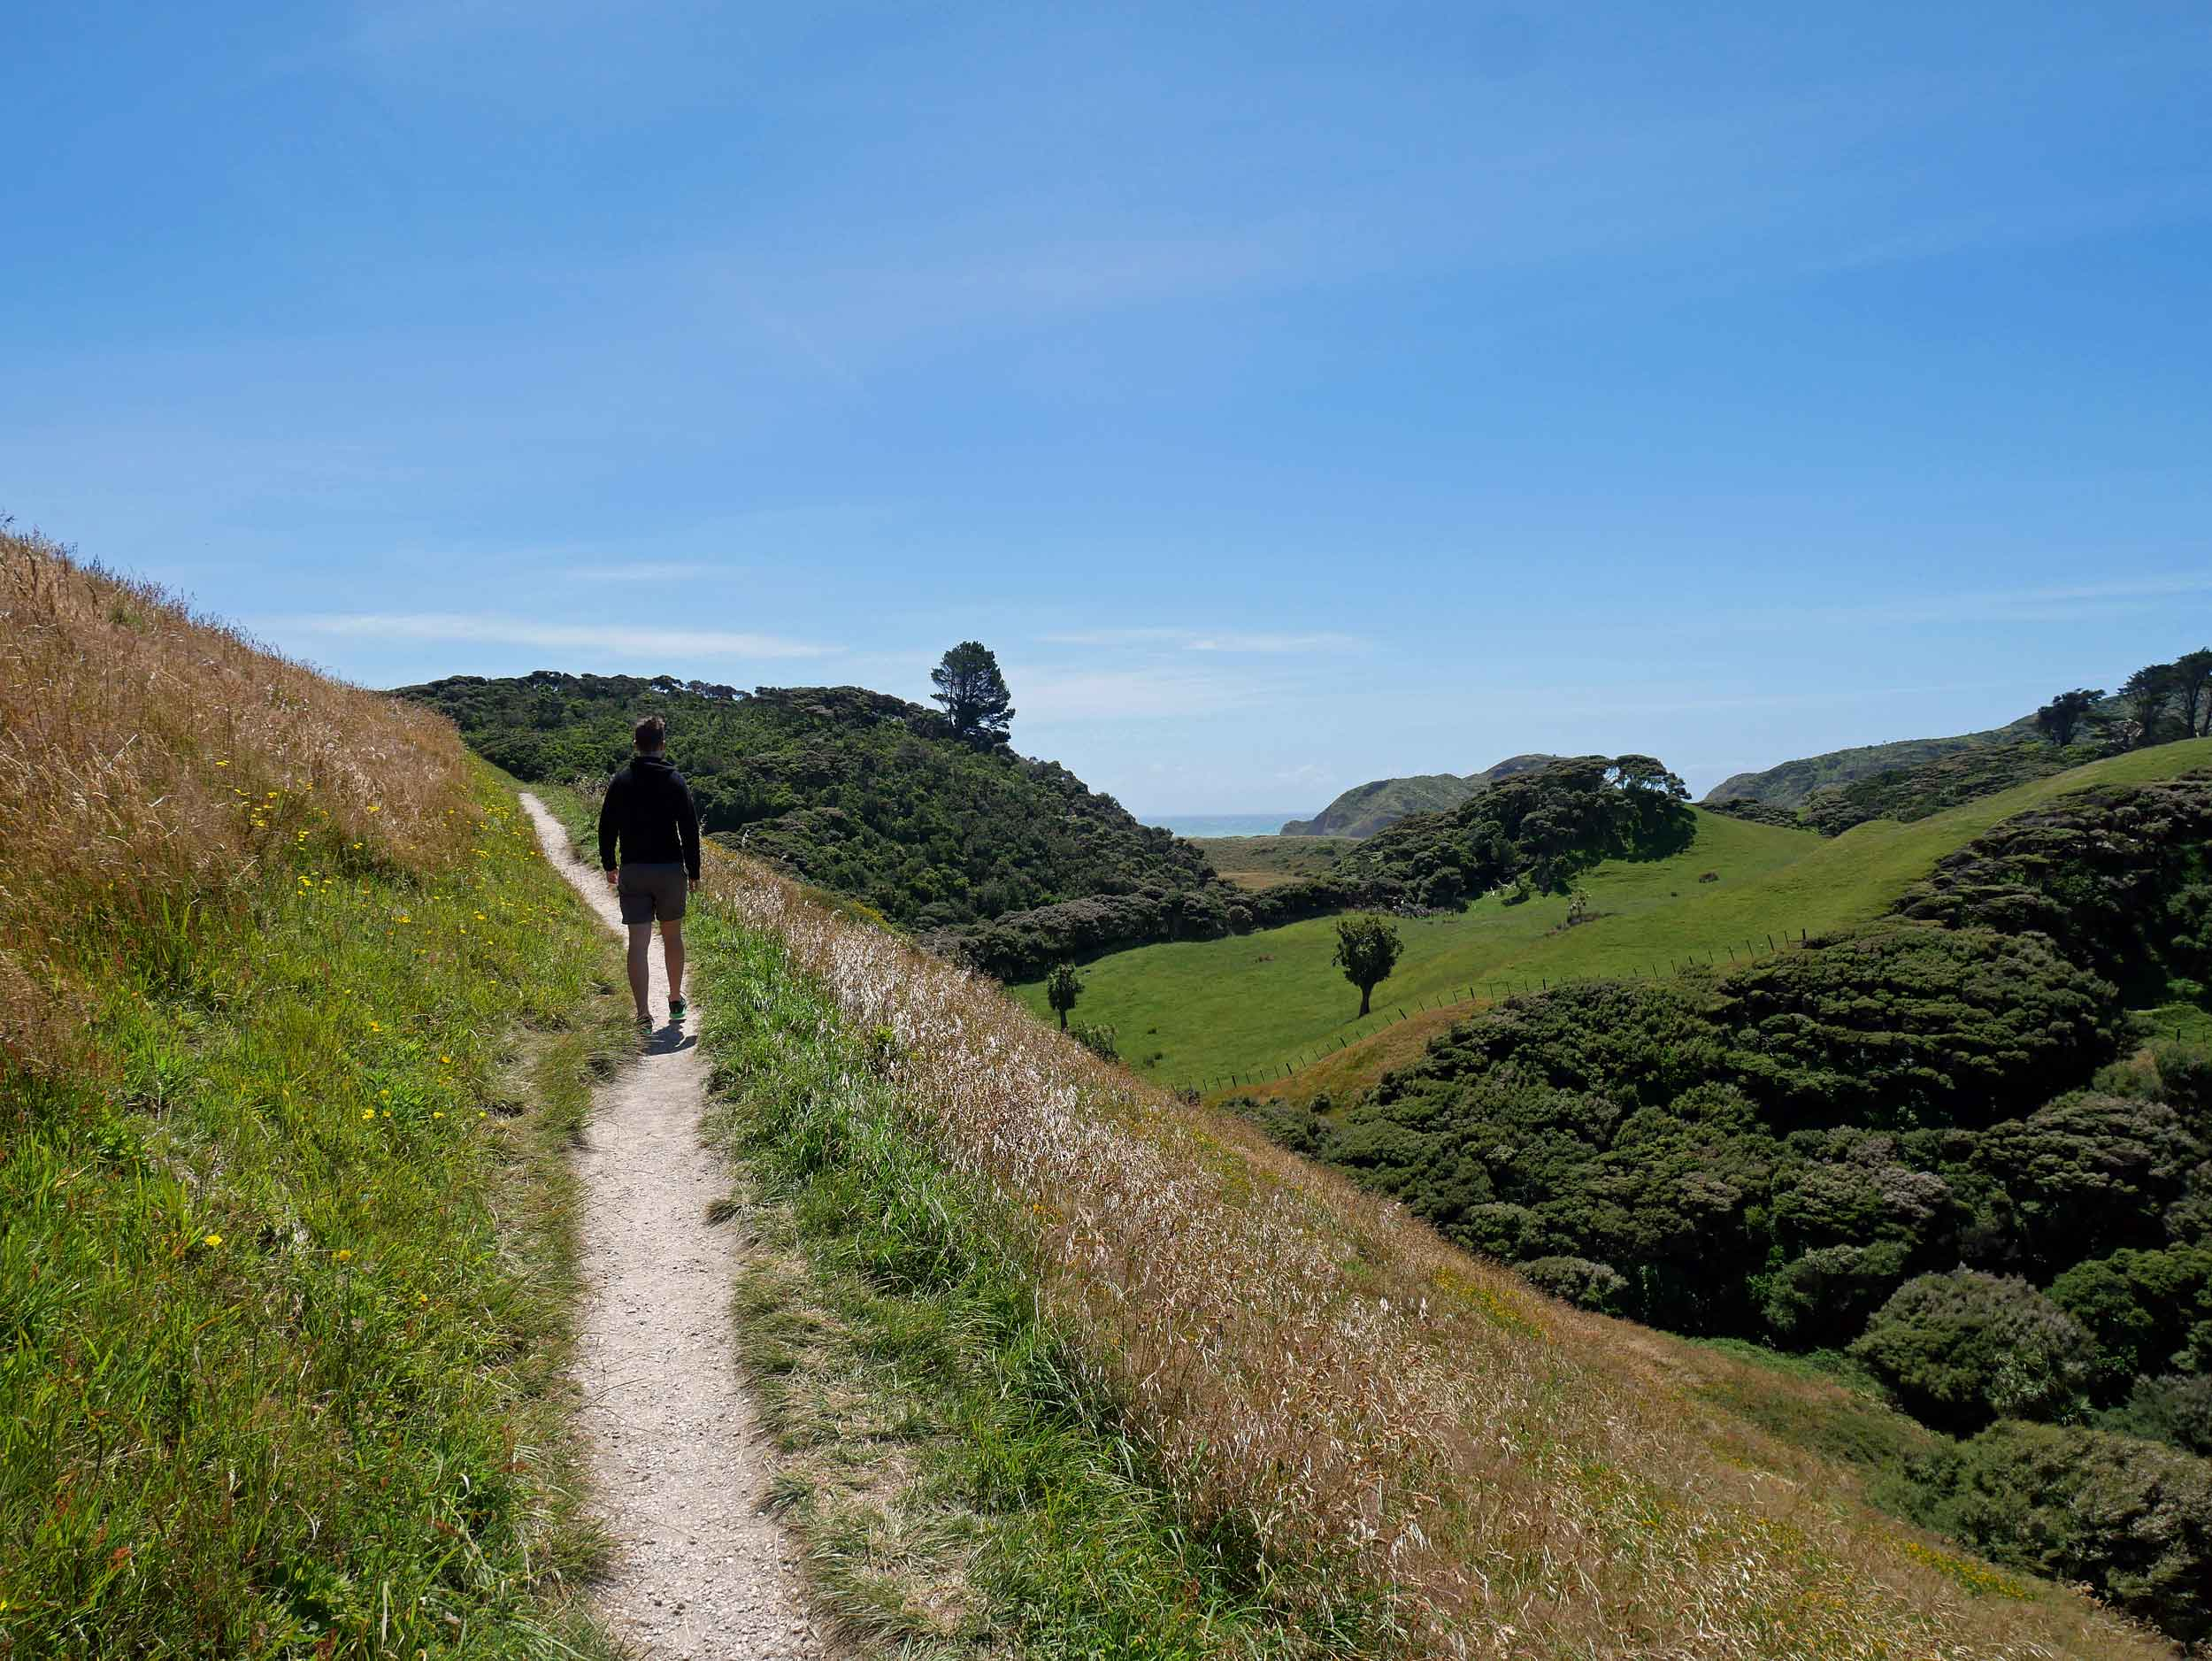 The winds on the walk to Wharariki Beach just west of Farewell Spit (the northern most point of the South Island) nearly blew us off the track (Jan 13).